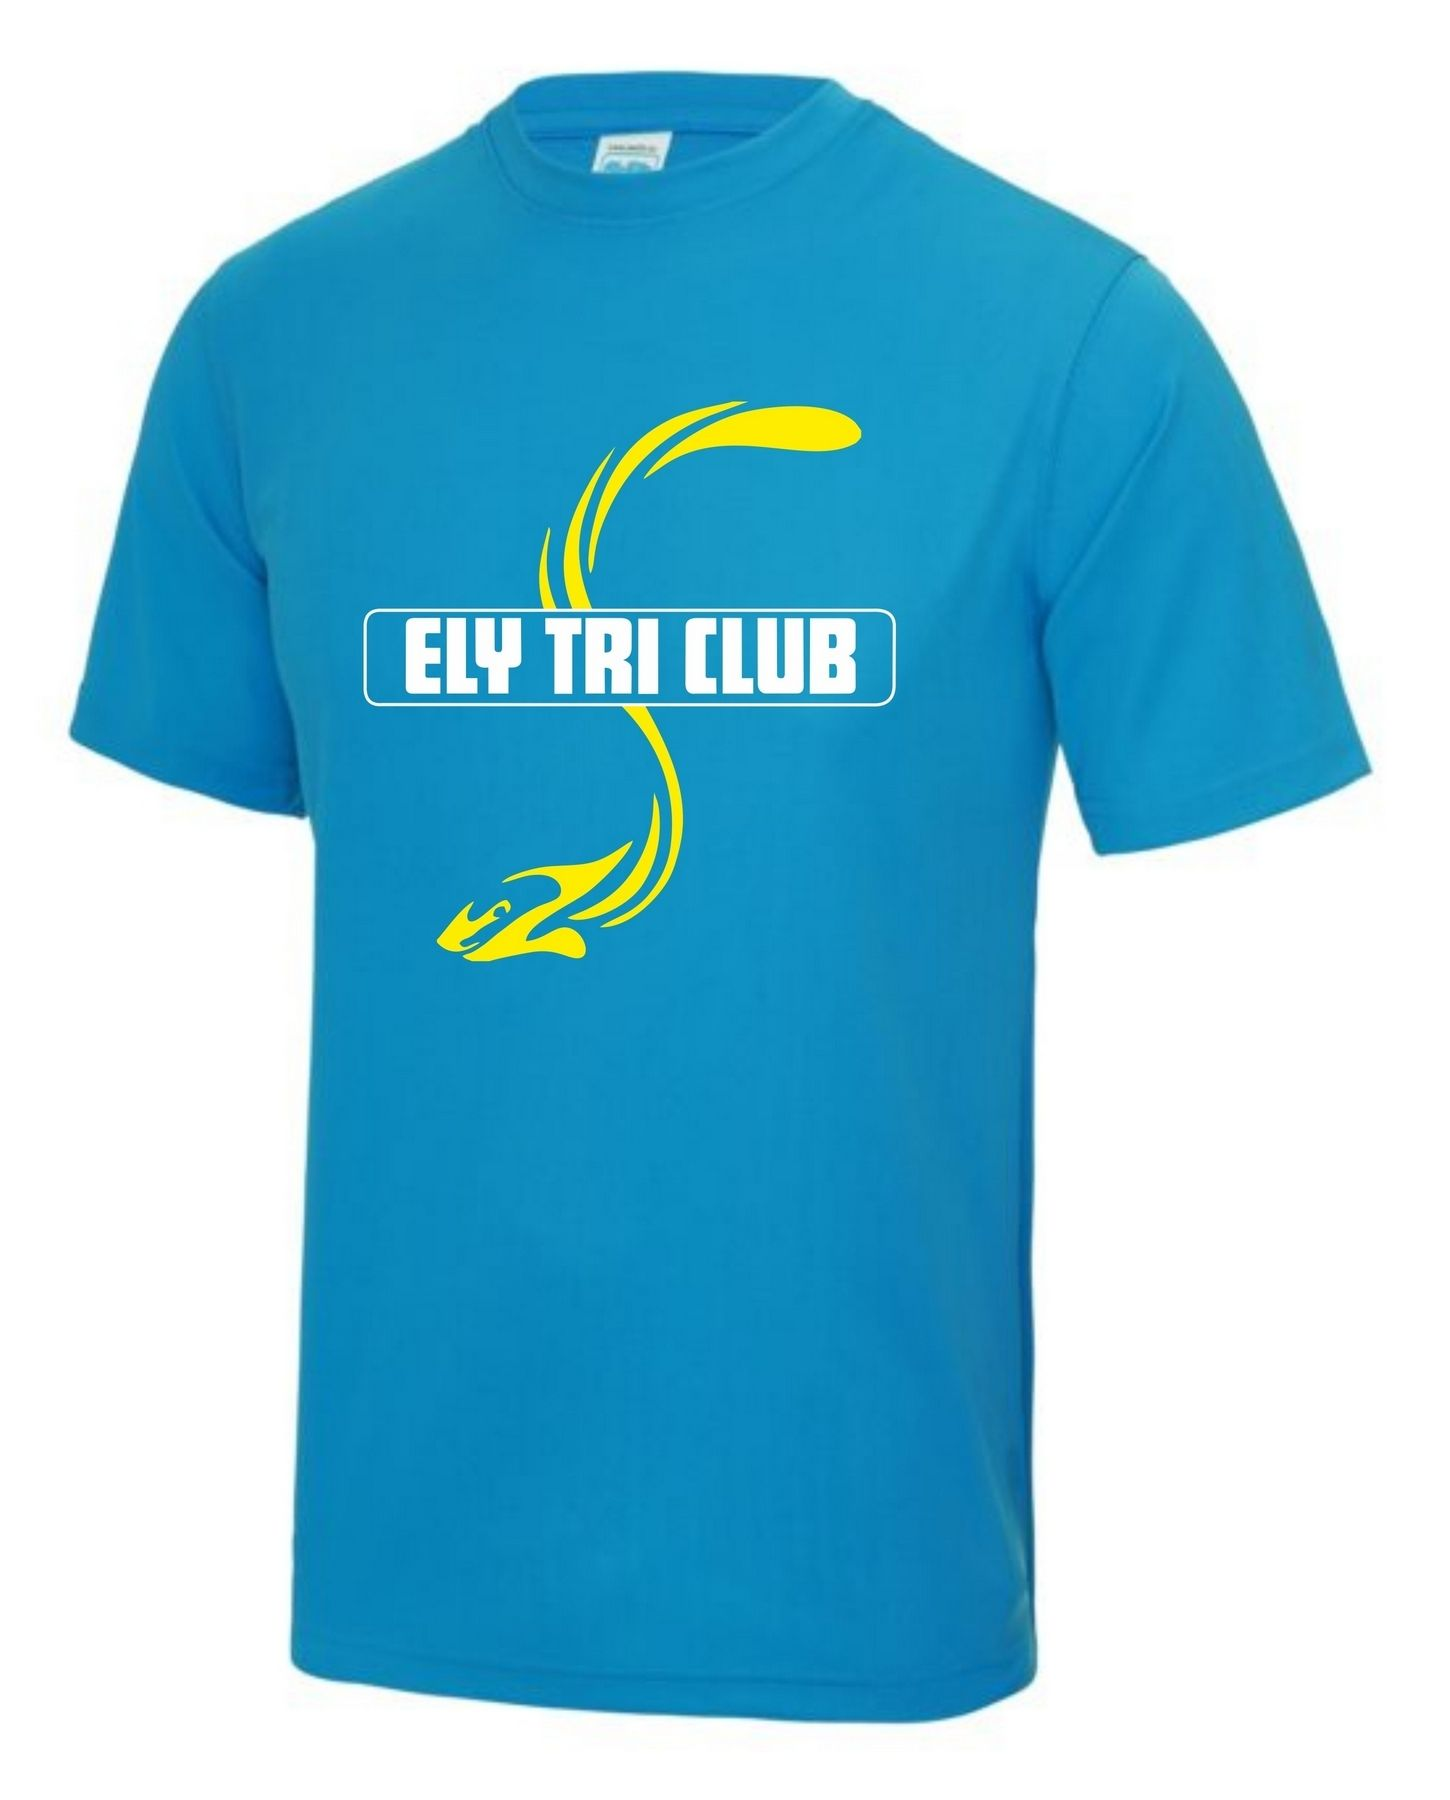 Ely Tri Club – Kids Performance Tee